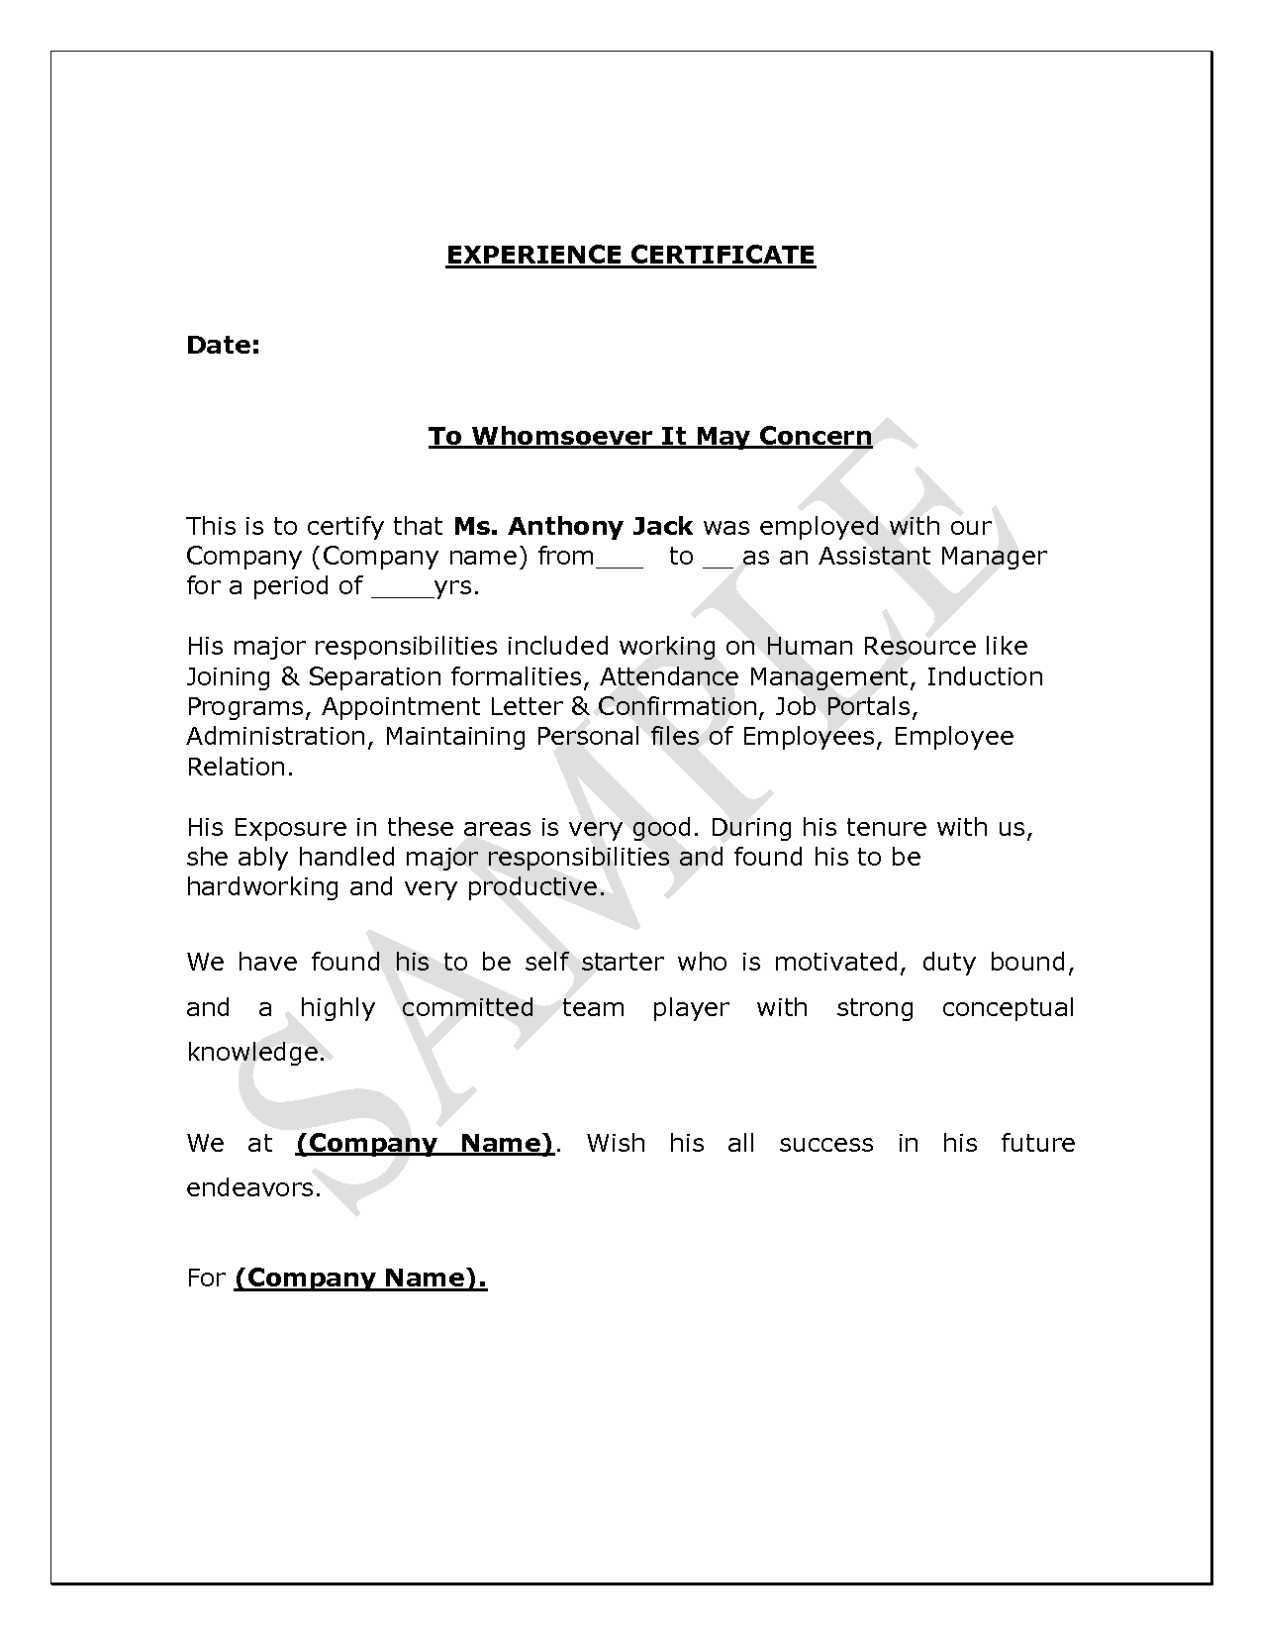 Job certificate format mission statement outline prompt letter job certificate format mission statement outline prompt letter studychacha letterhtml spiritdancerdesigns Images